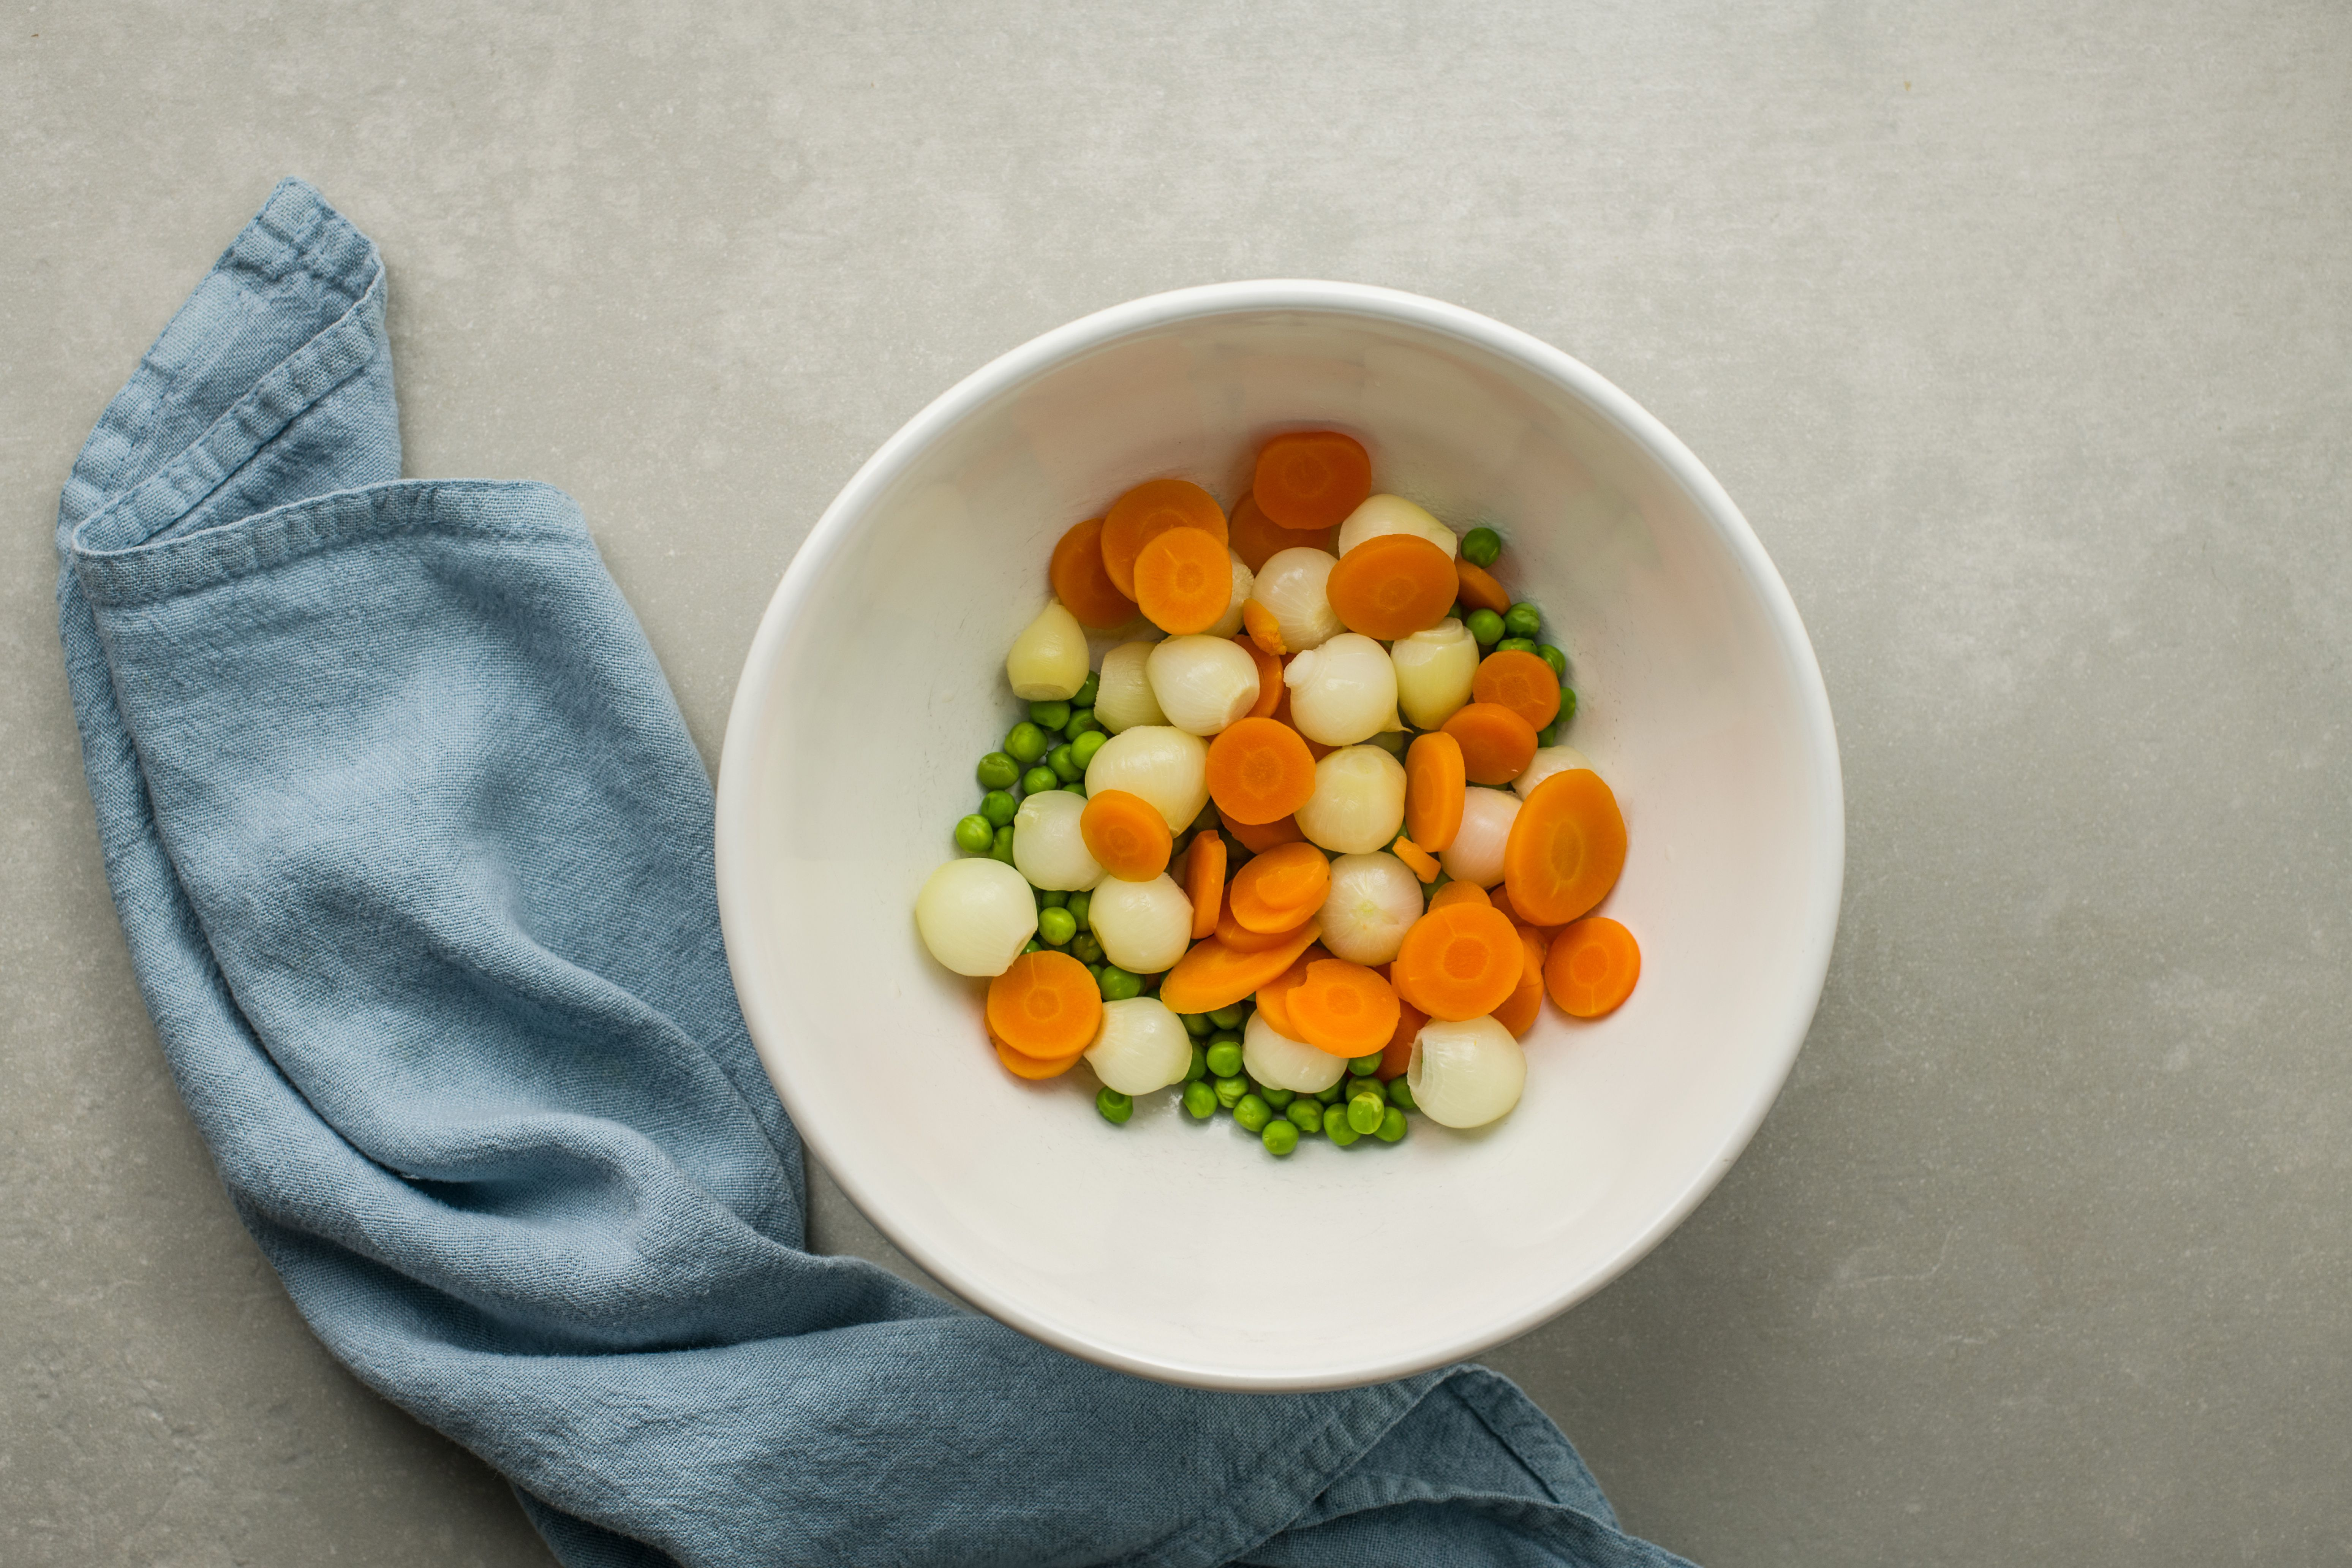 Drained and cooked peas, carrots, and pearl onions